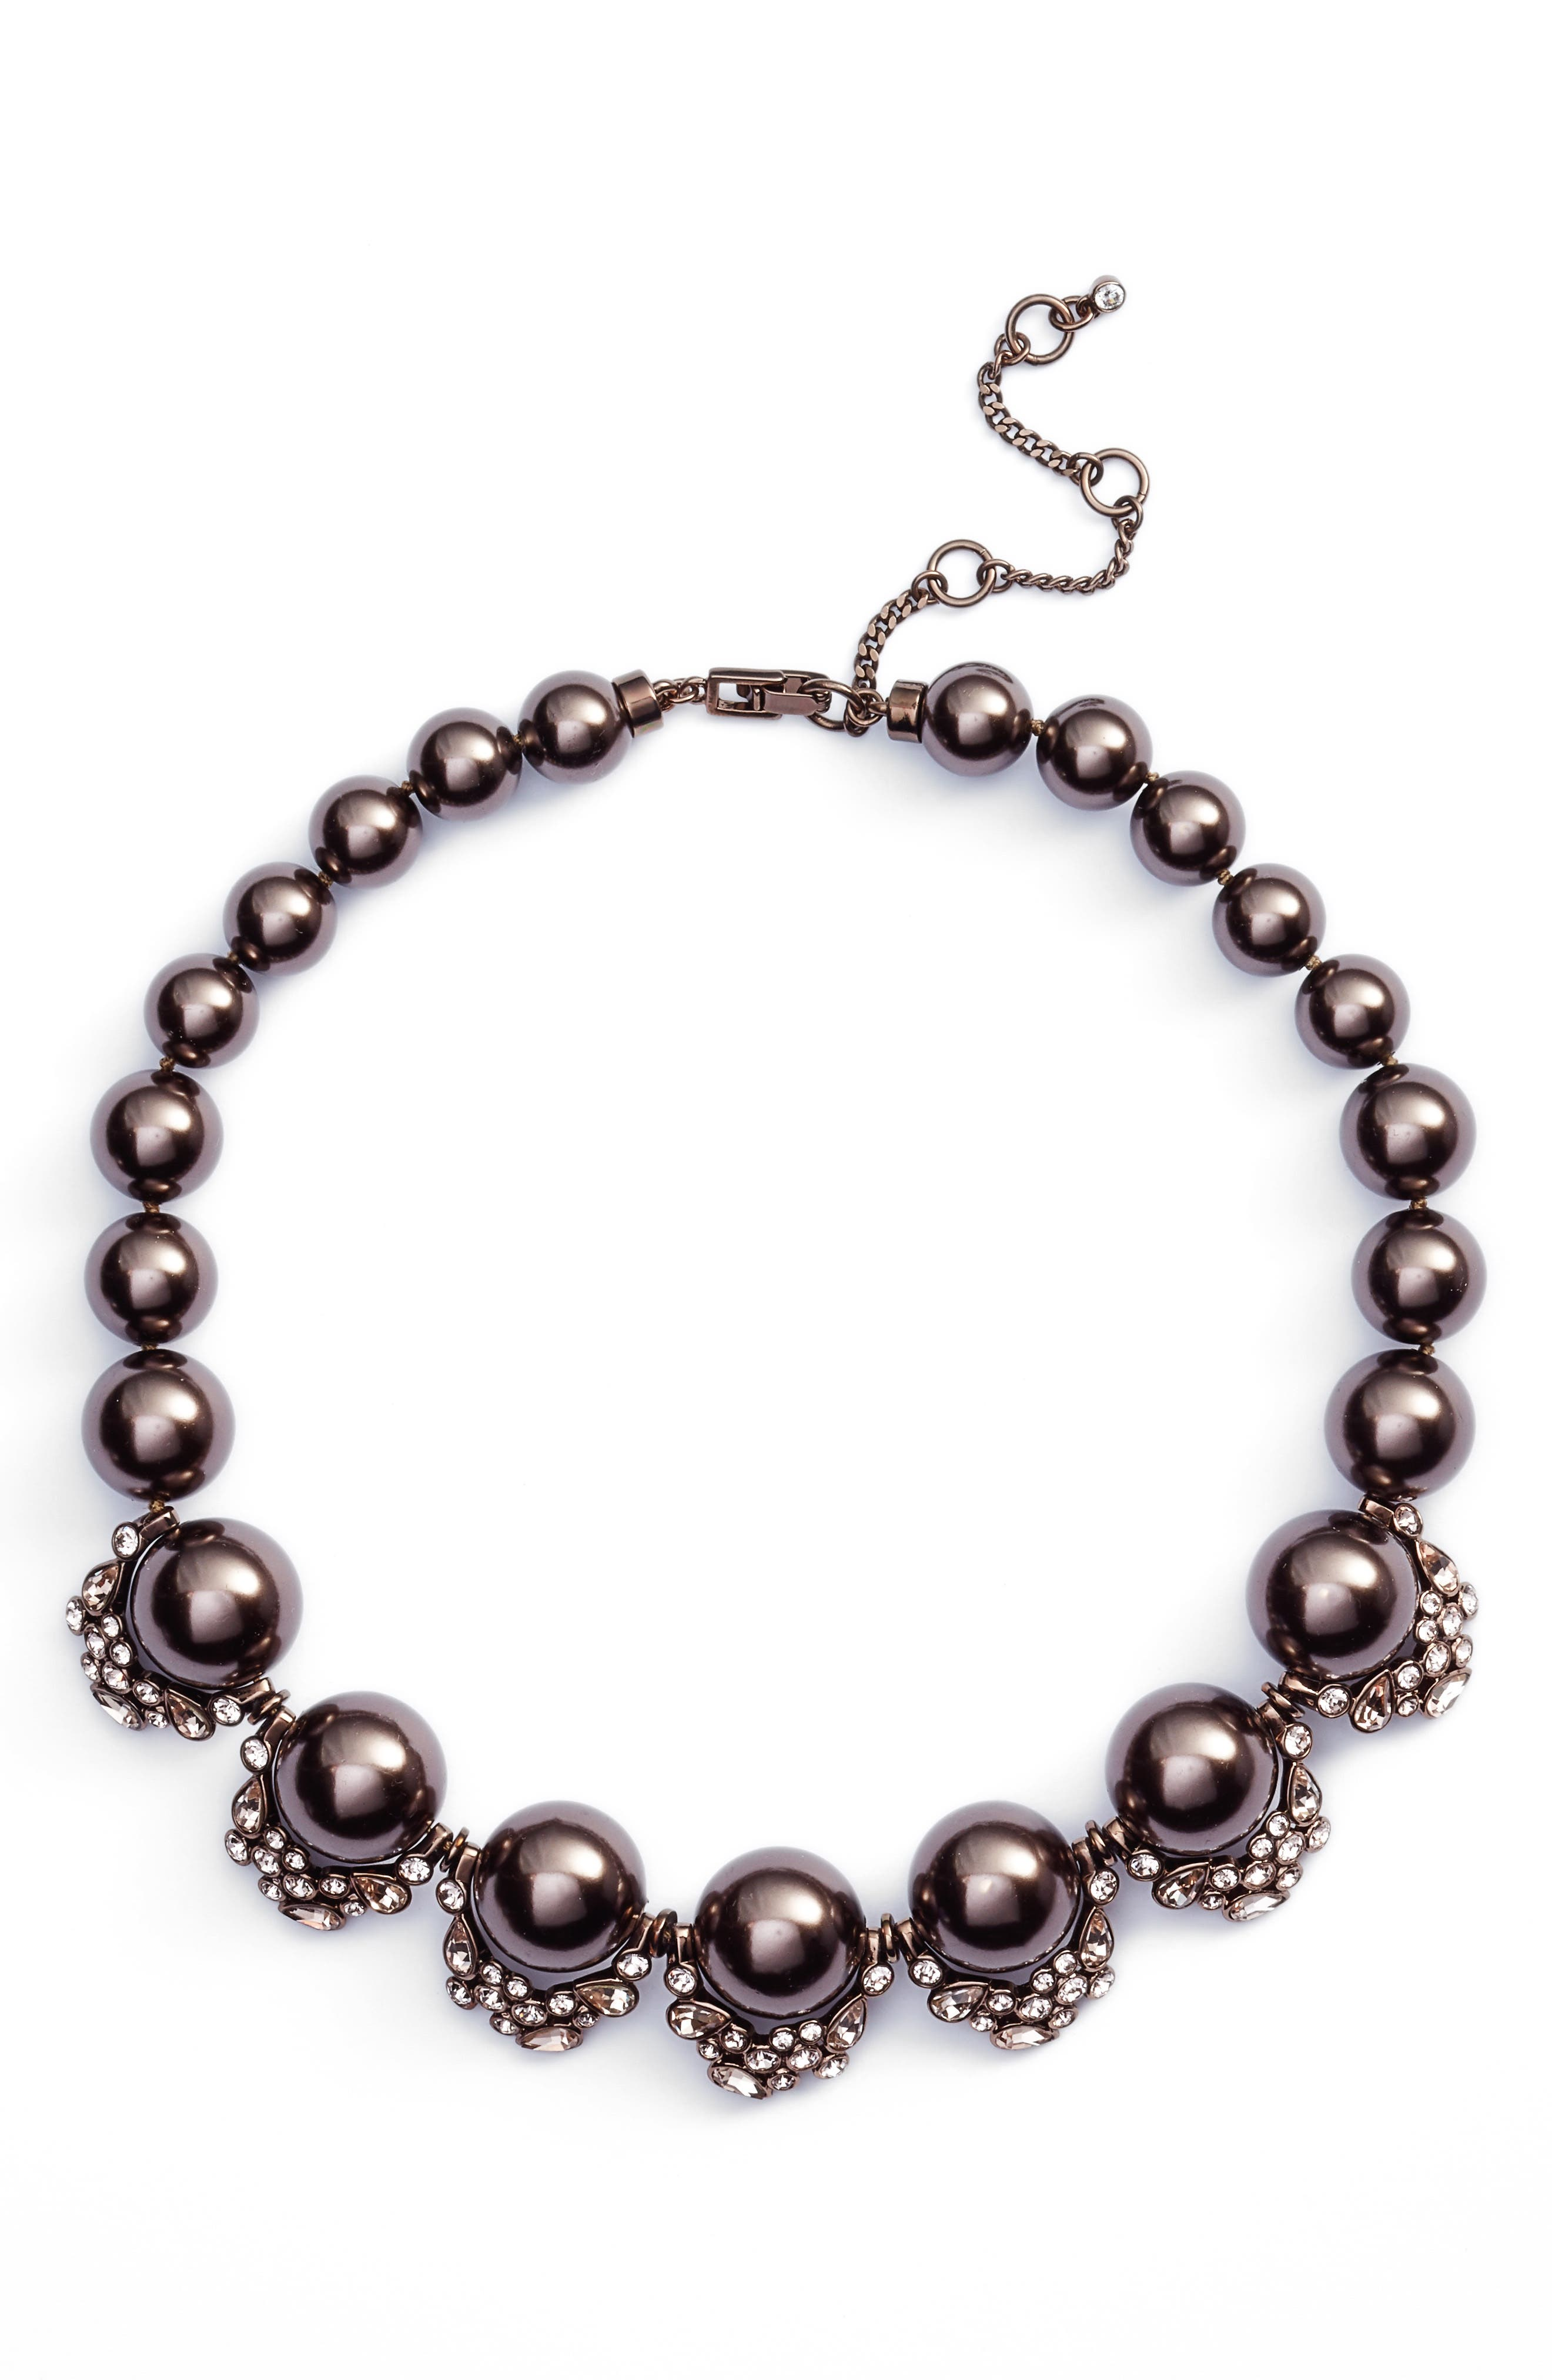 Alternate Image 1 Selected - Givenchy Imitation Pearl & Crystal Collar Necklace